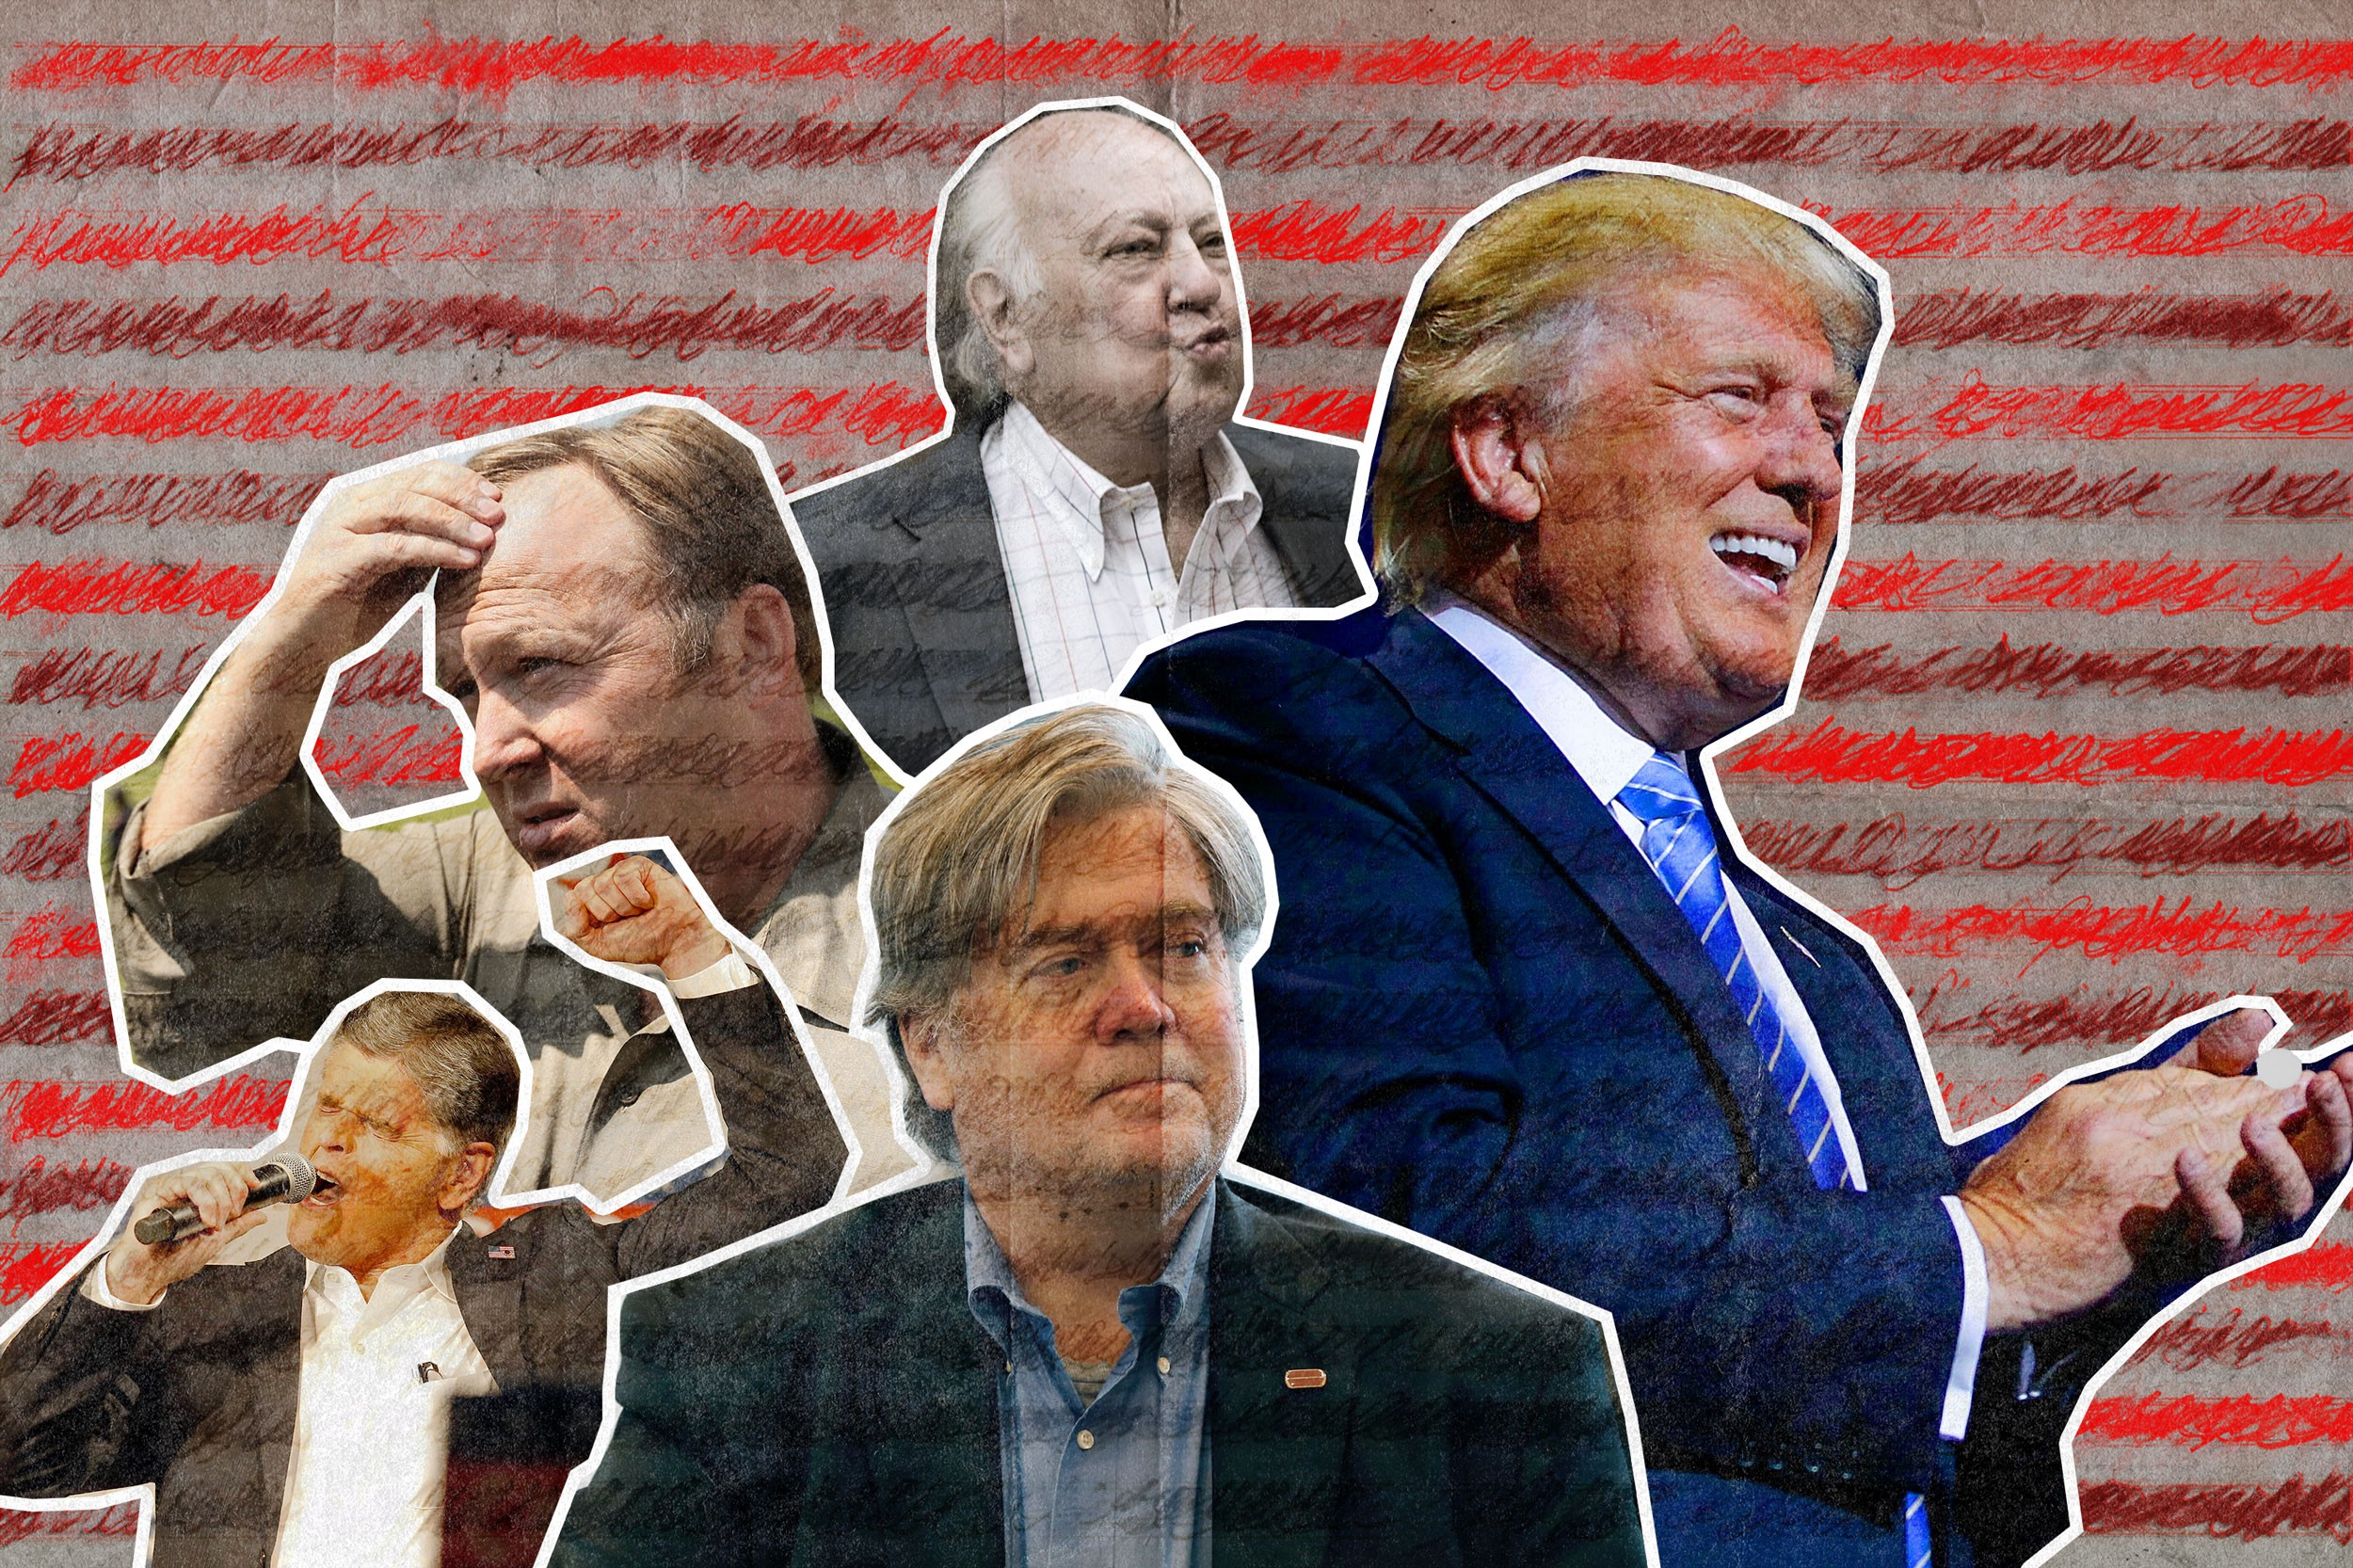 Clockwise from right: Donald Trump, Steve Bannon, Sean Hannity, Alex Jones, and Roger Ailes (AP Images/Ringer illustration)